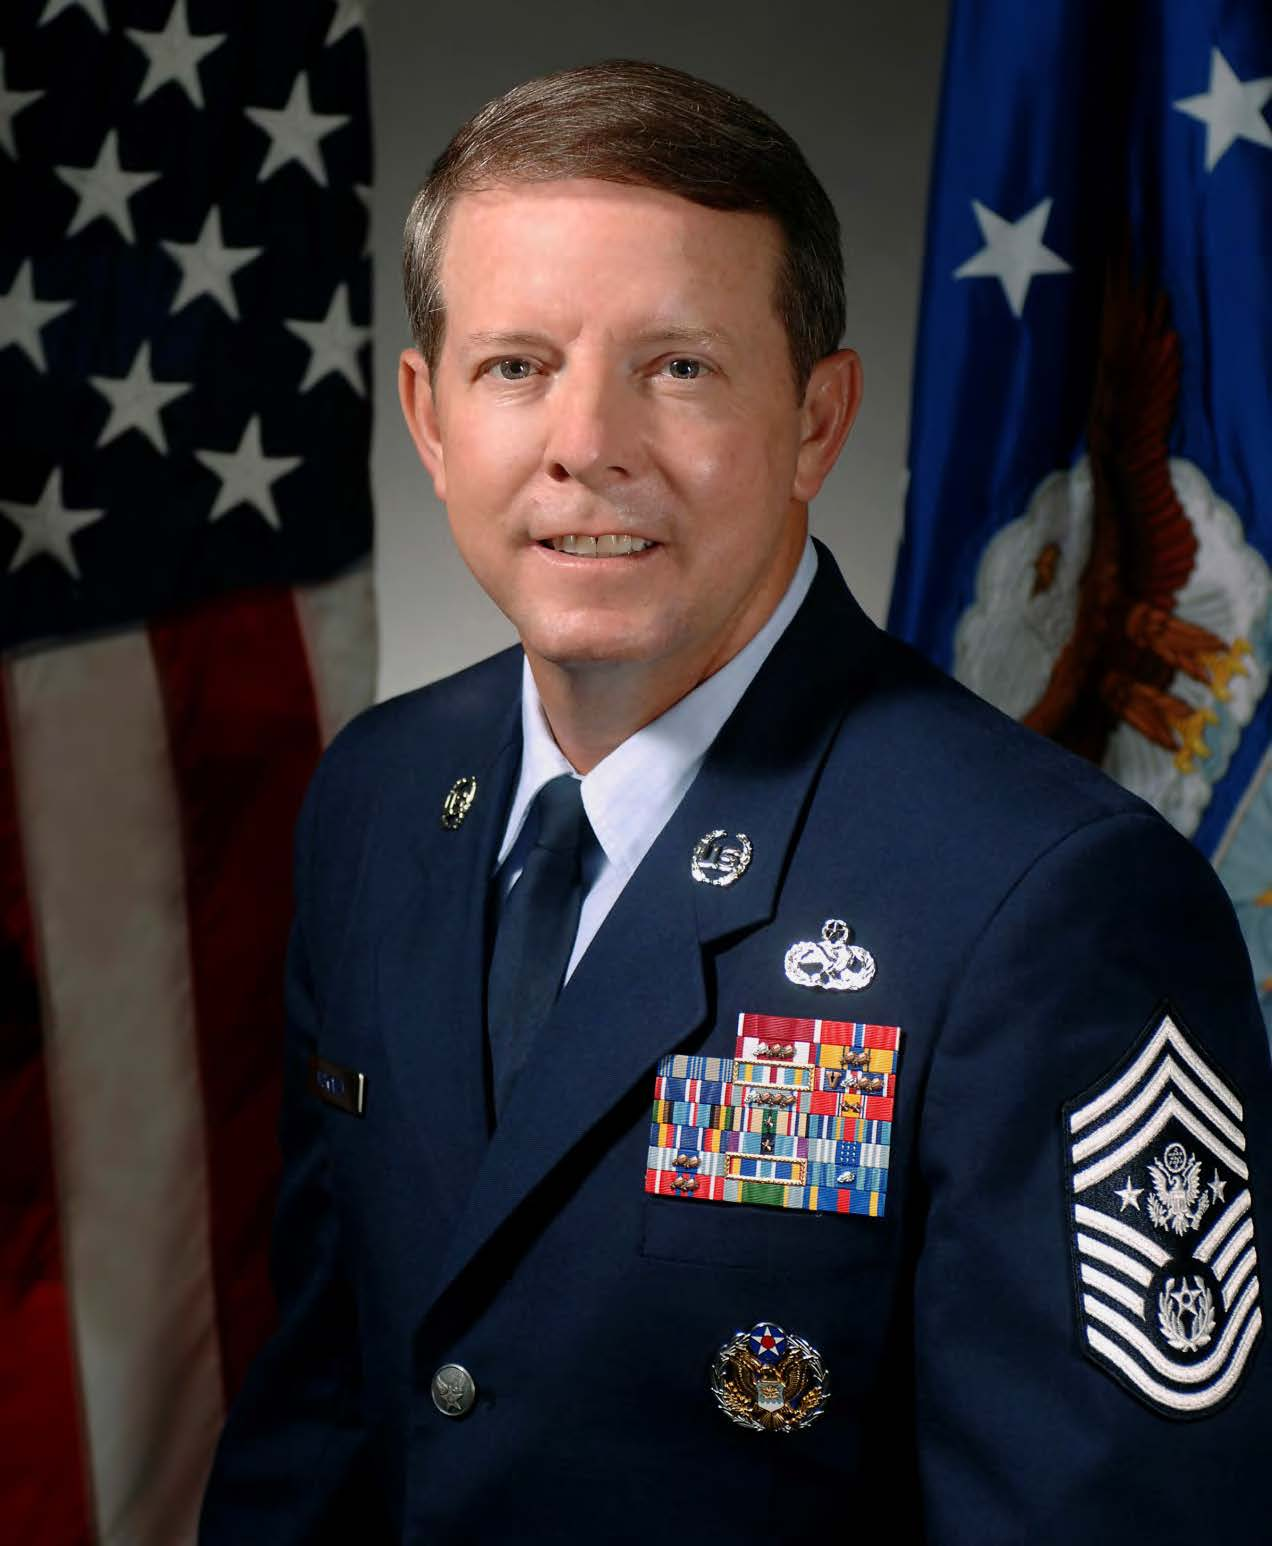 Chief Master Sergeant of the Air Force Rodney J.  McKinley, U.S. Air Force, Retired